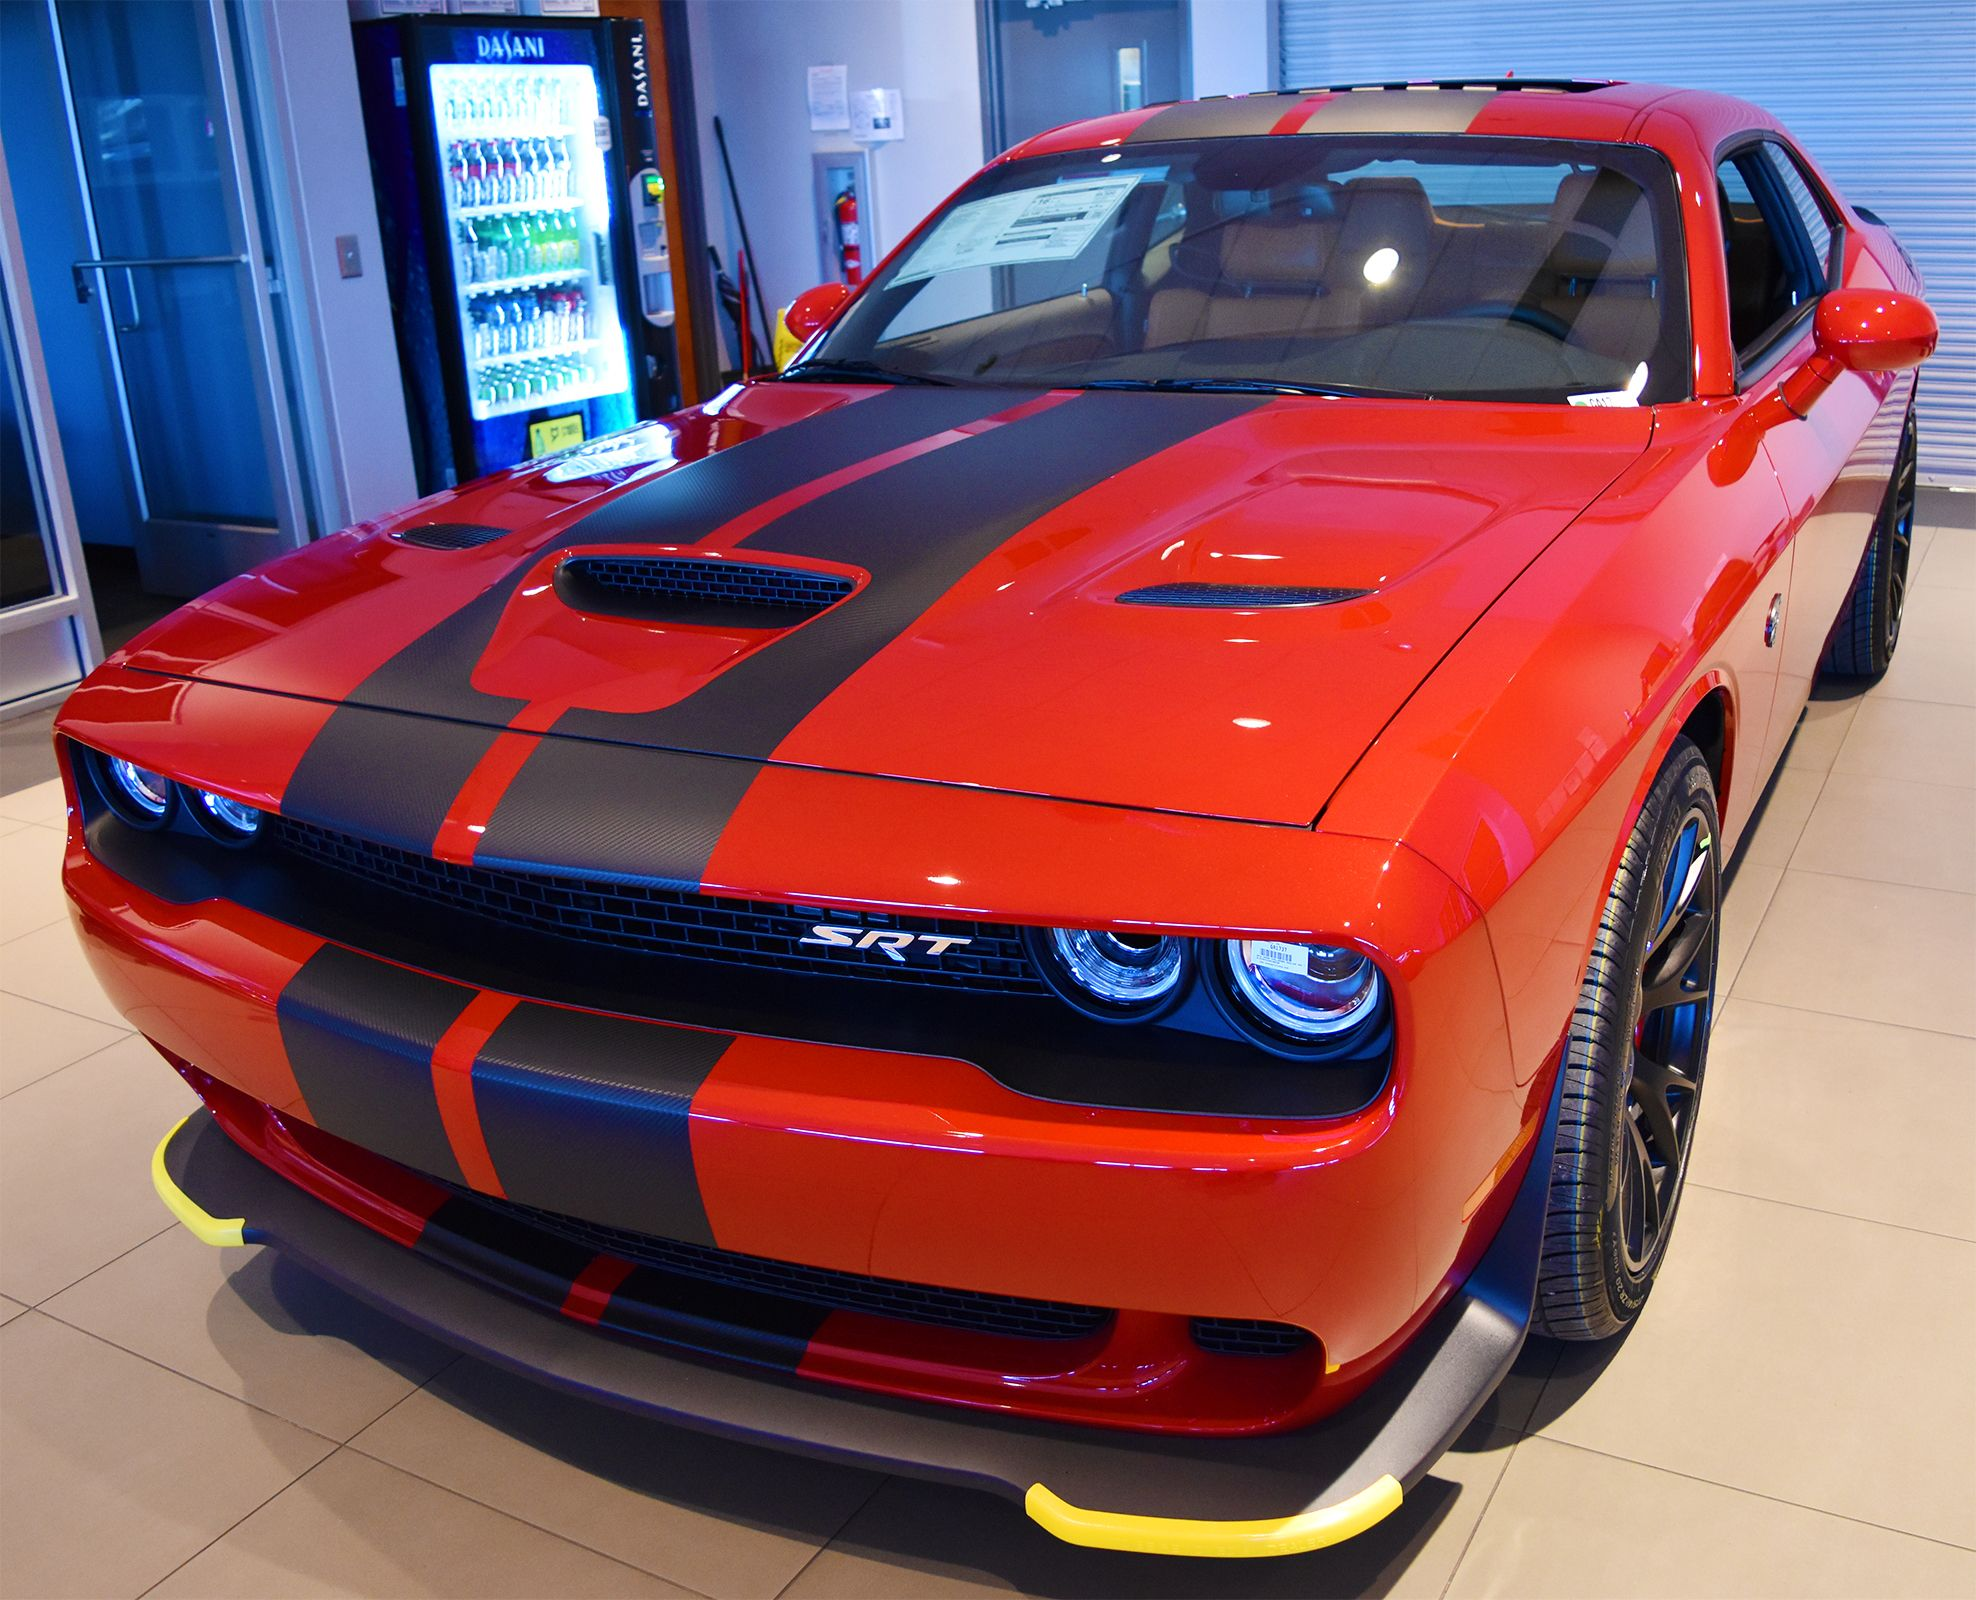 Automatic moonroof 707 horsepower this 2016 dodge challenger hellcat is practically purrfect